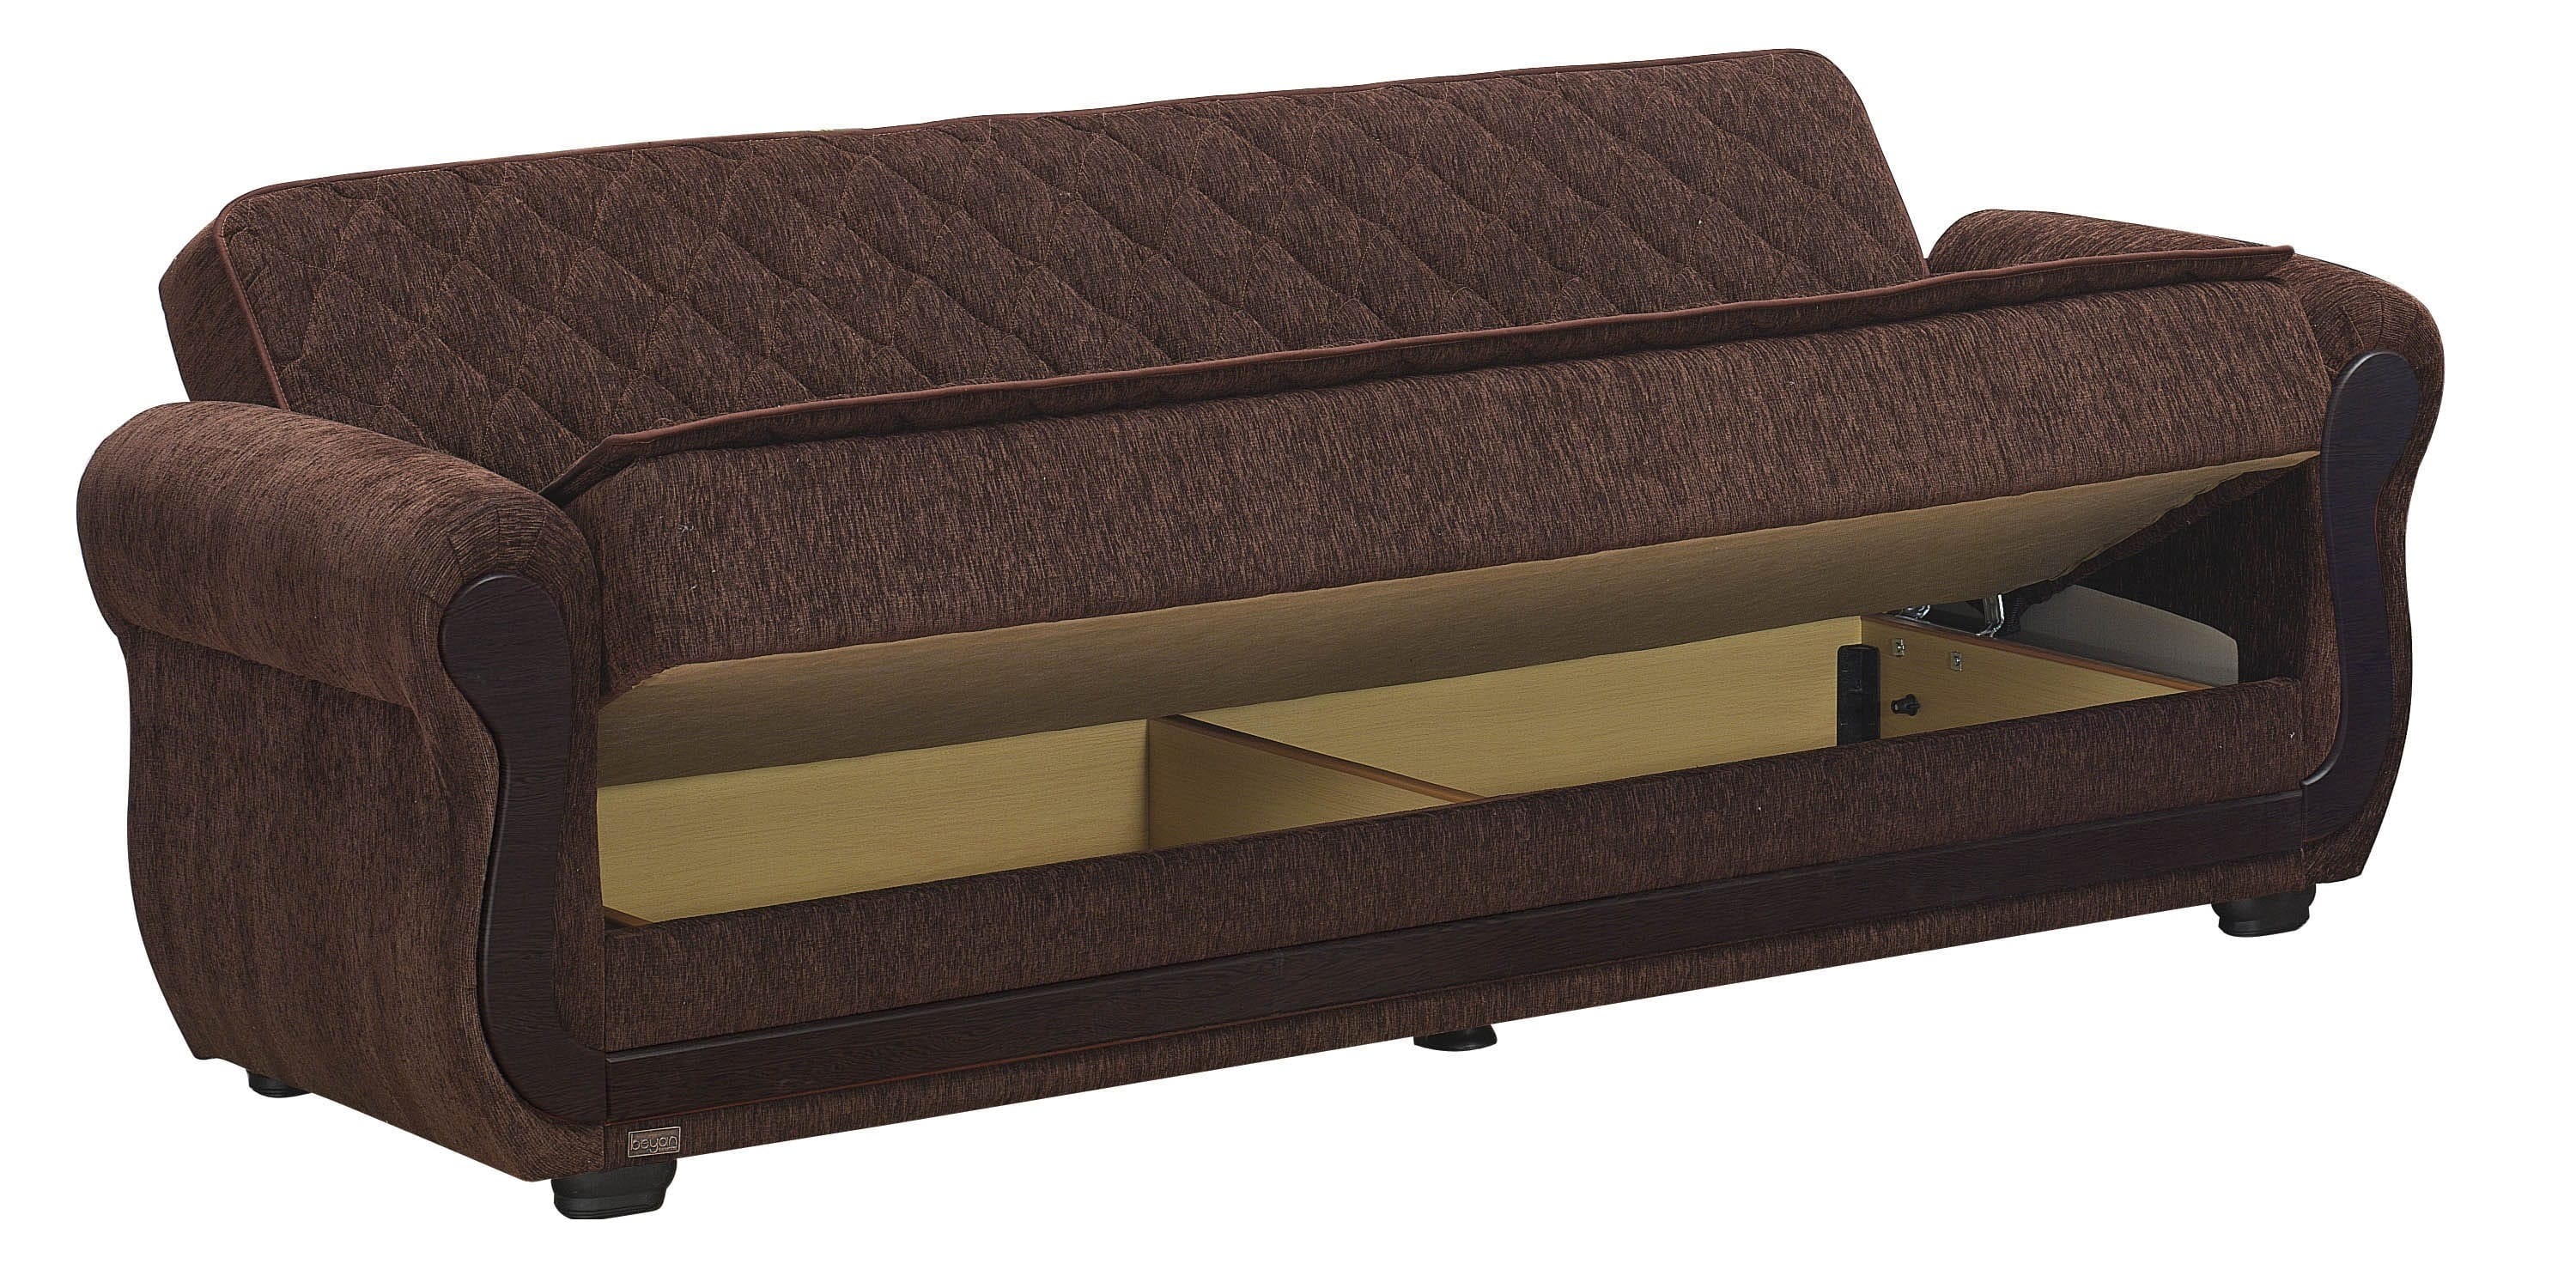 empire furniture sofa steel set 5 seater sunrise bed by usa